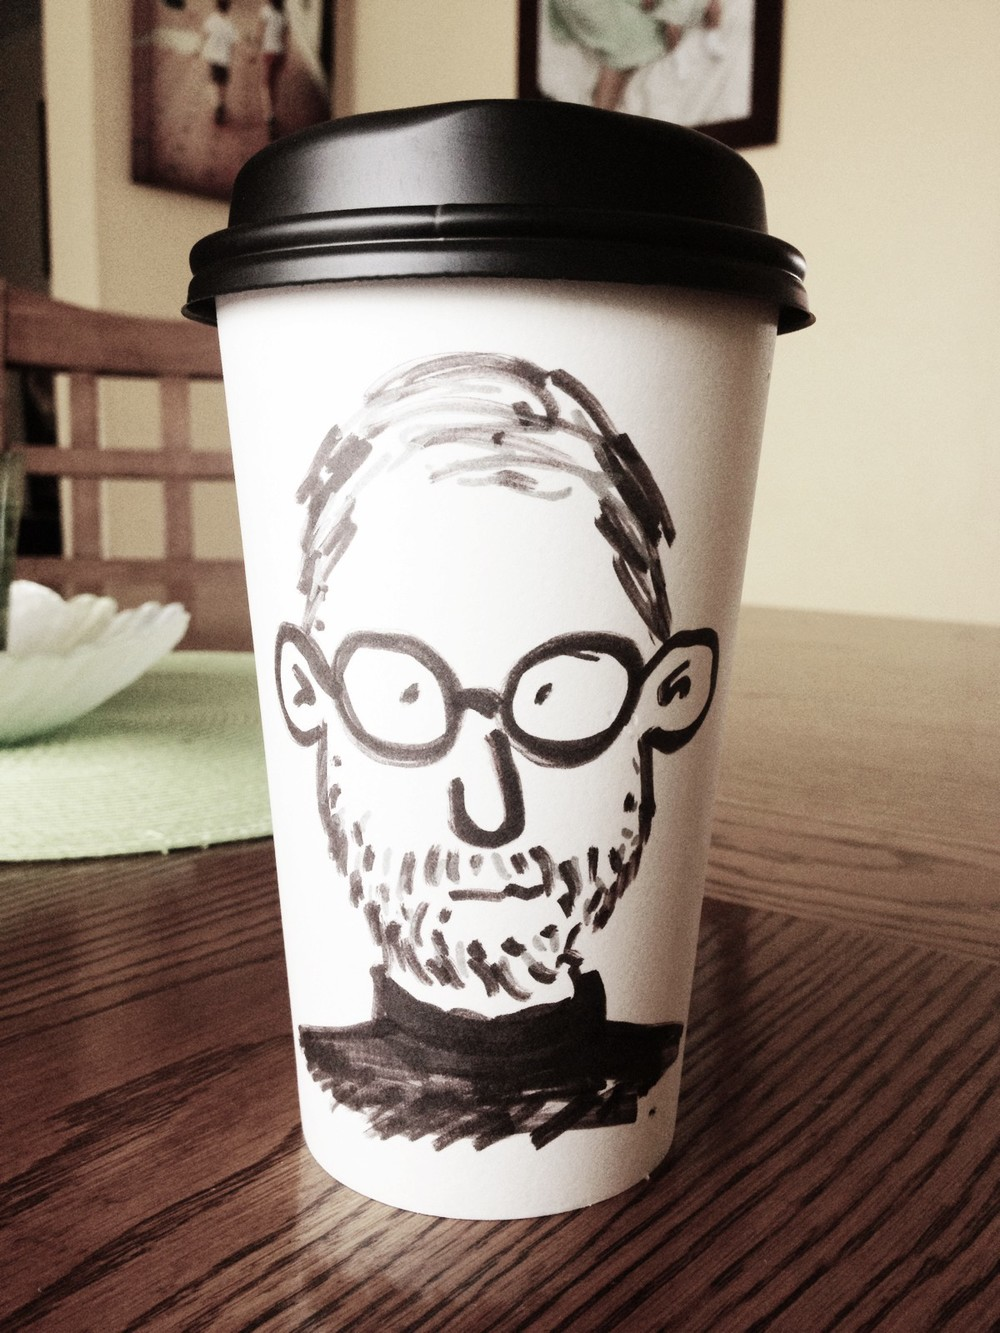 steve-jobs-cartoon-coffee-cup-portrait.jpg